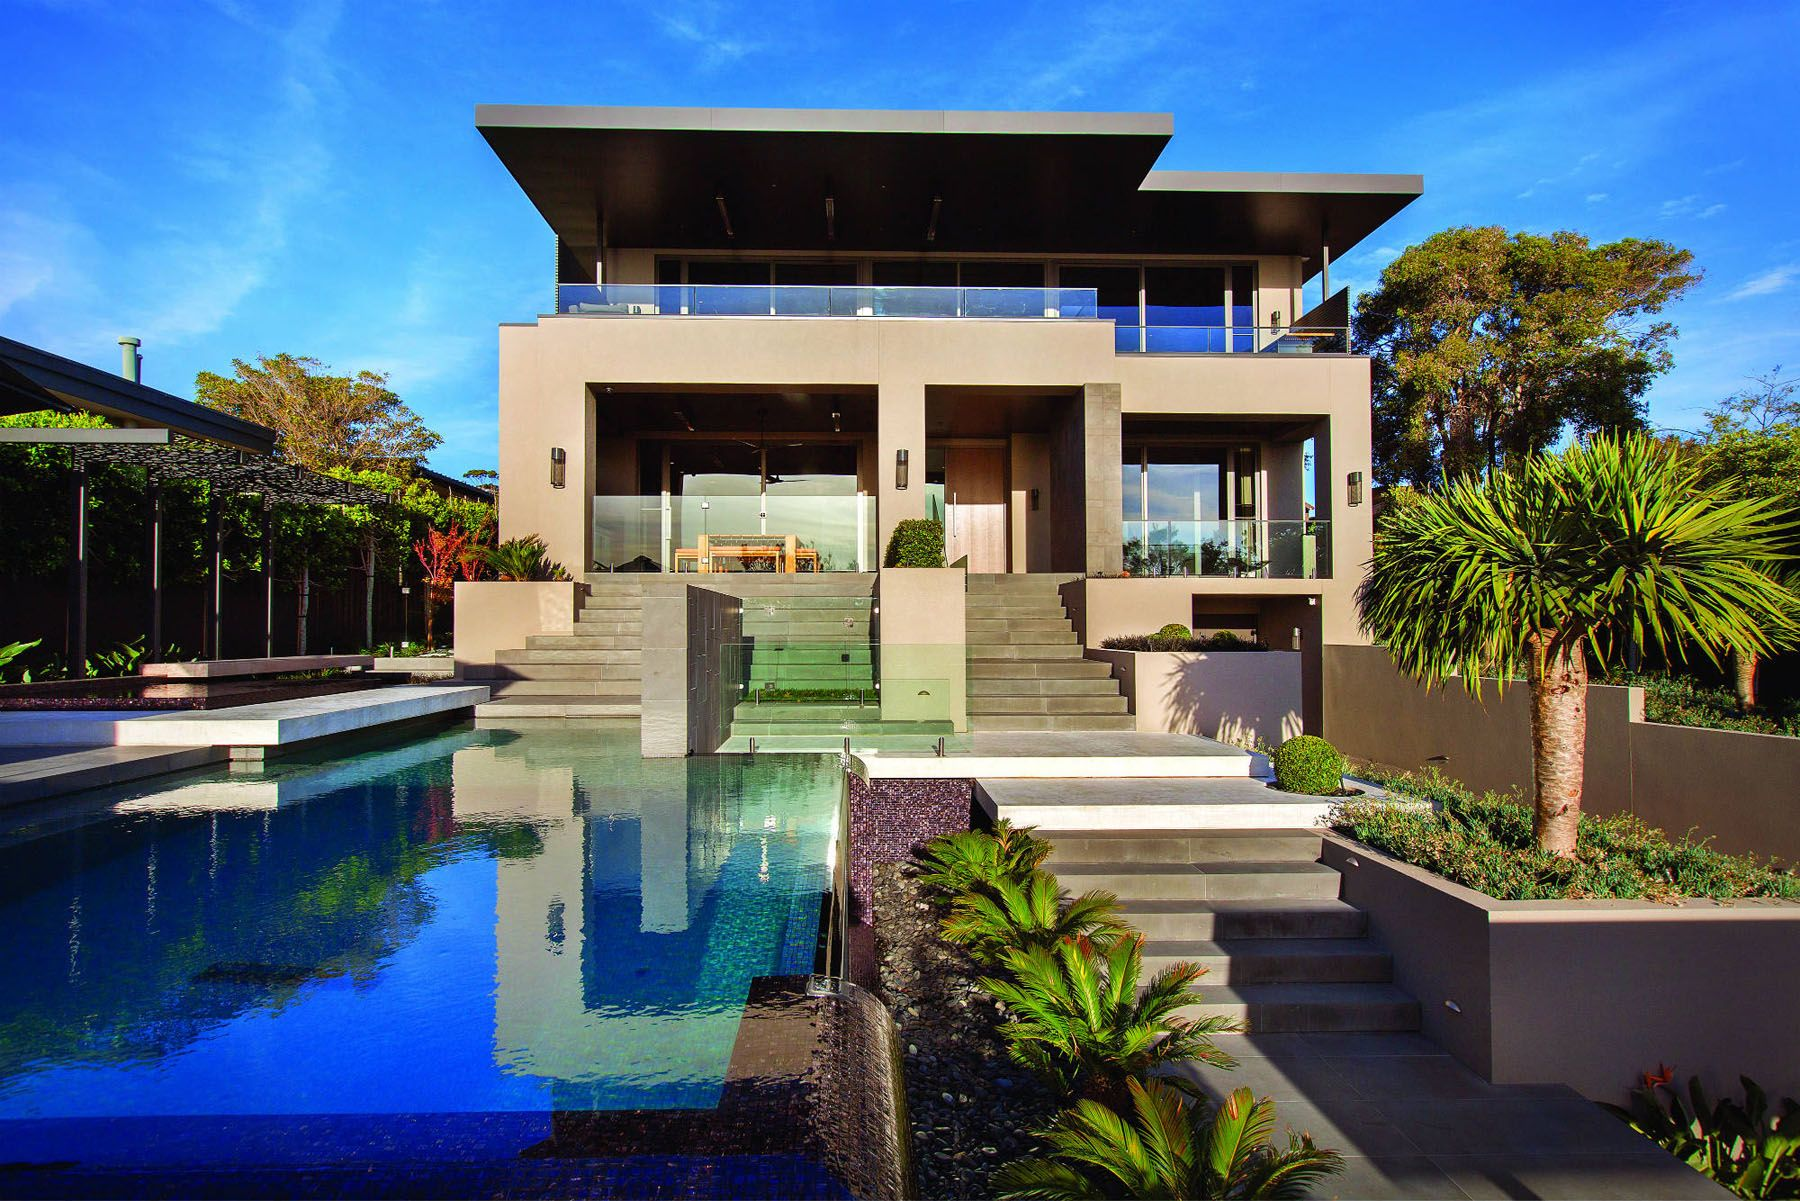 Bayside Dream Home On Burgess Street By COS Design 11